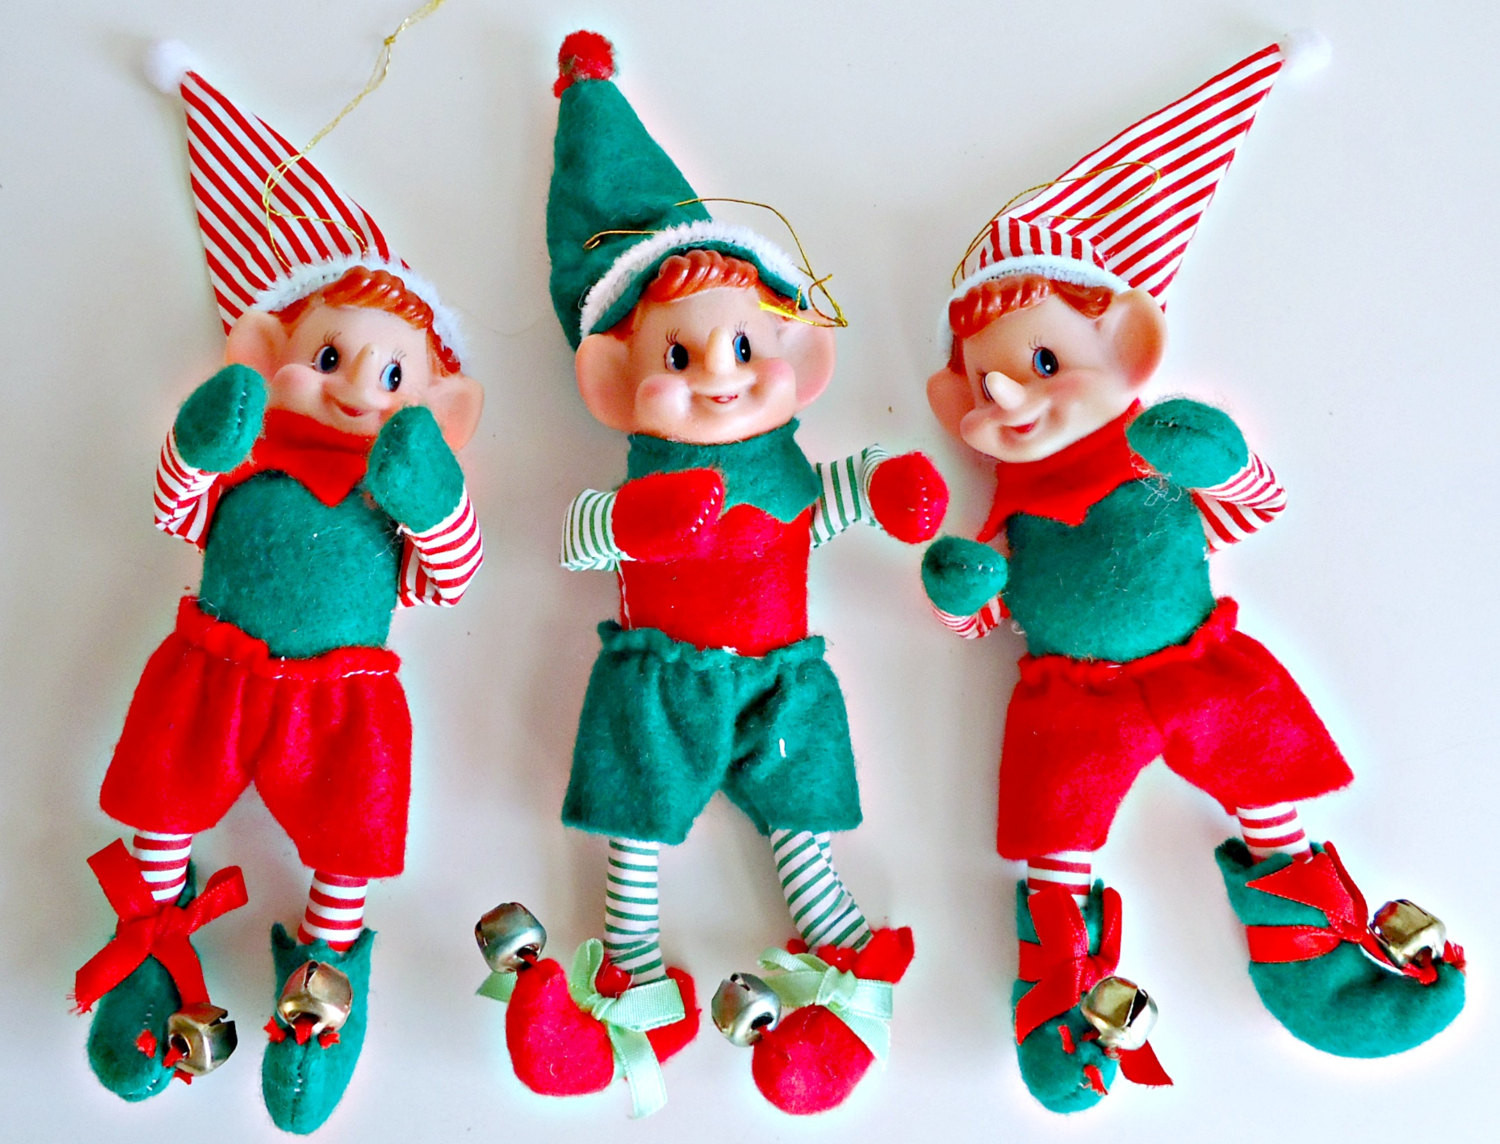 Elf Christmas ornaments Awesome 3 Vintage Christmas Elves Elf ornaments Christmas Decoration Of Top 47 Photos Elf Christmas ornaments